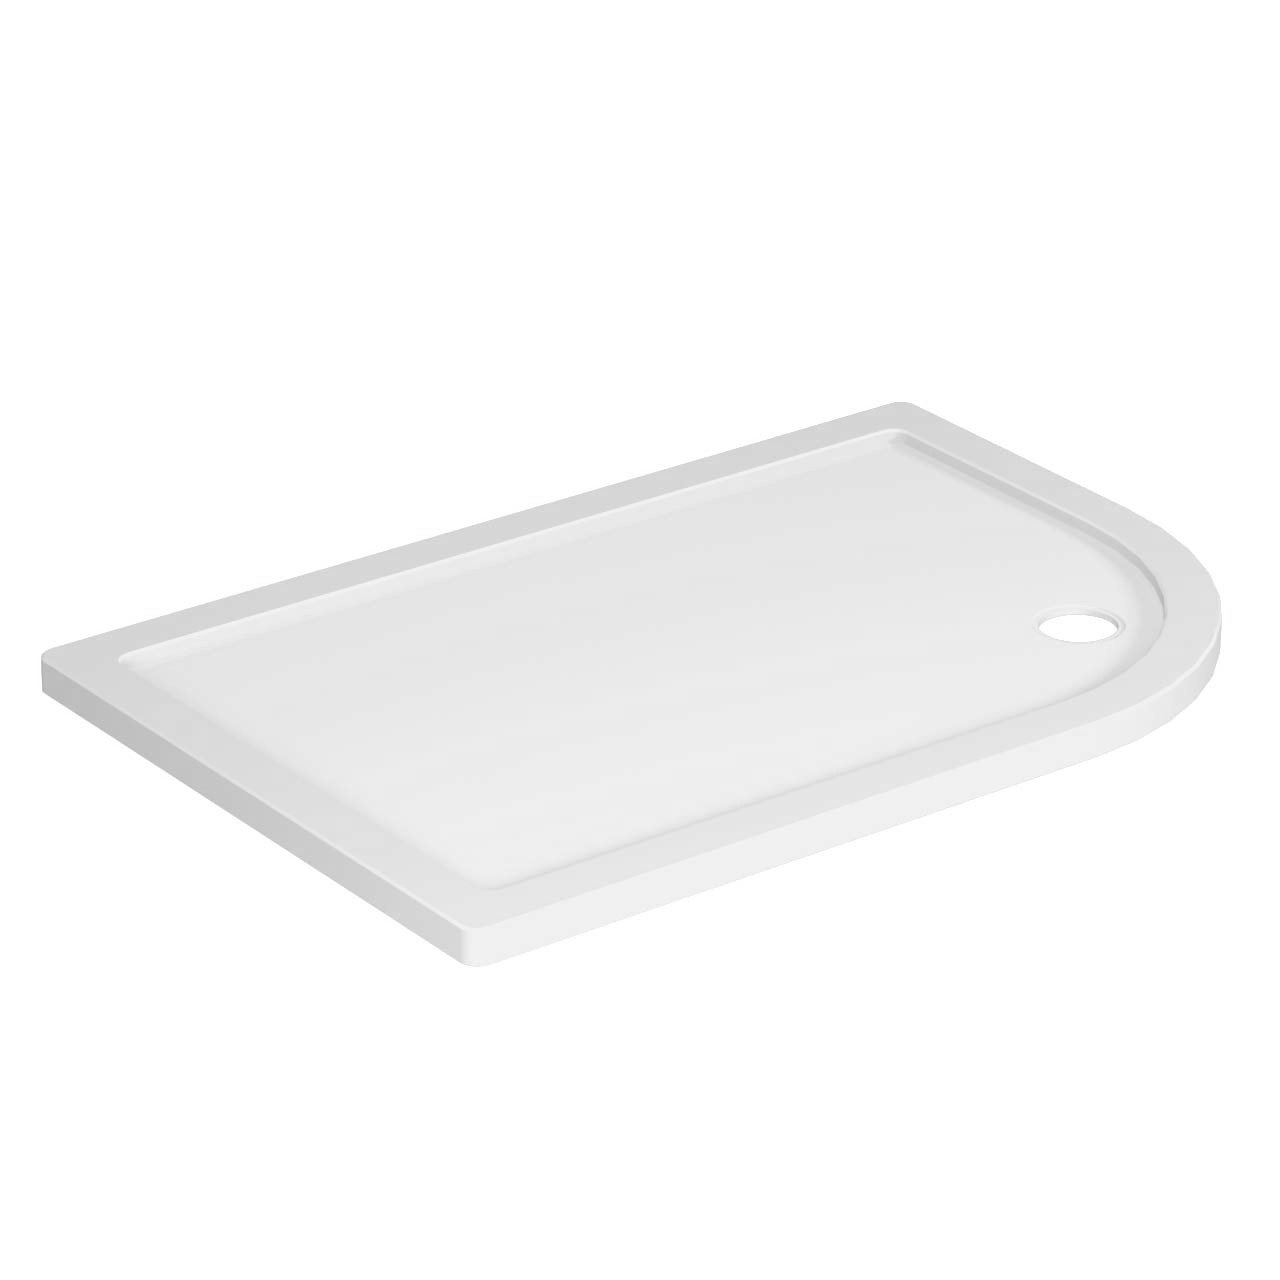 40mm Pearlstone 1200 x 800 Right Hand Offset Quadrant Shower Tray